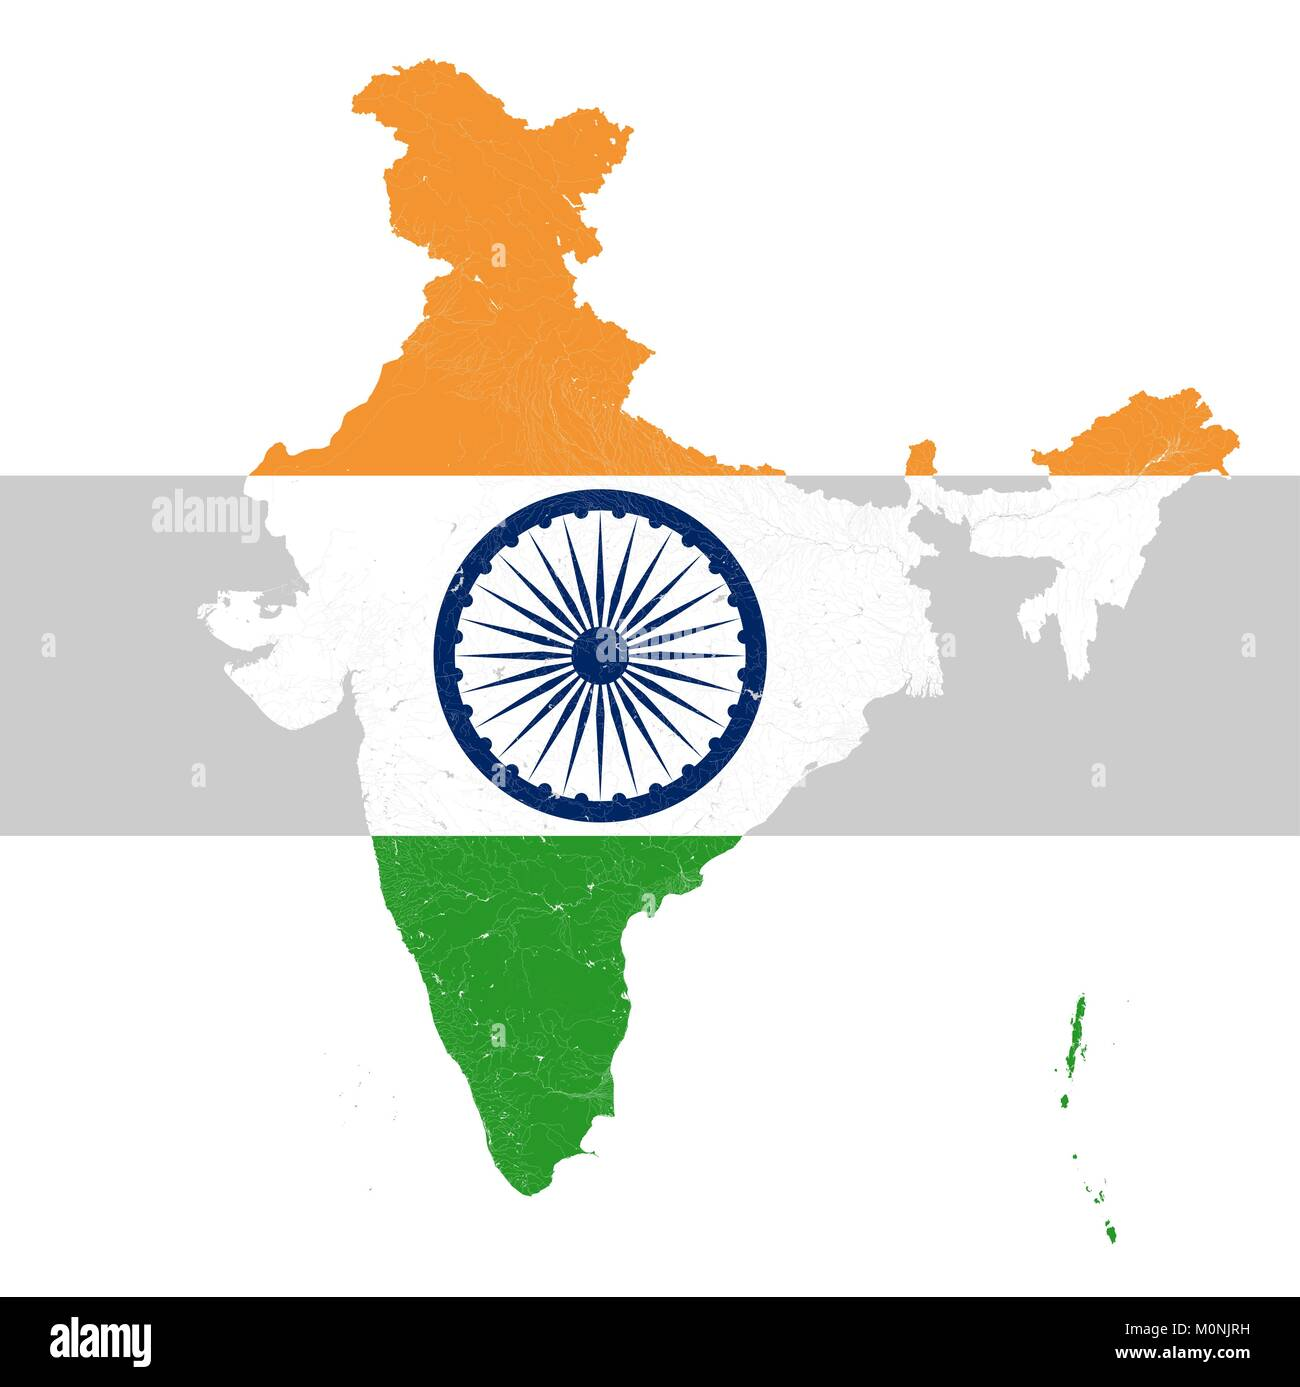 Map of India with rivers and lakes in colors of the national flag of India.. Map consists of separate maps of federal - Stock Vector